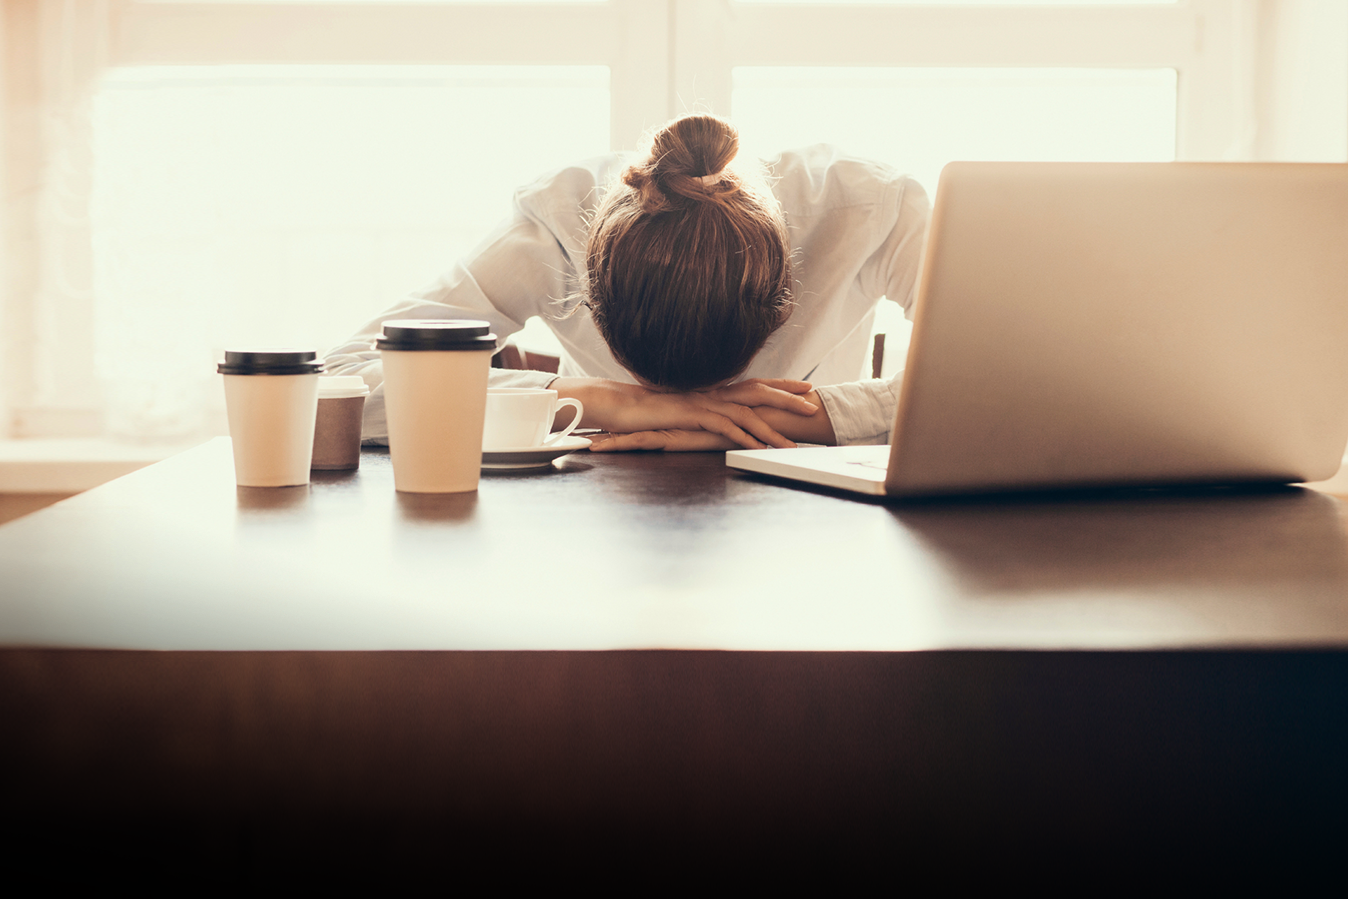 Woman overwhelmed by emails and meetings with her head down on the desk